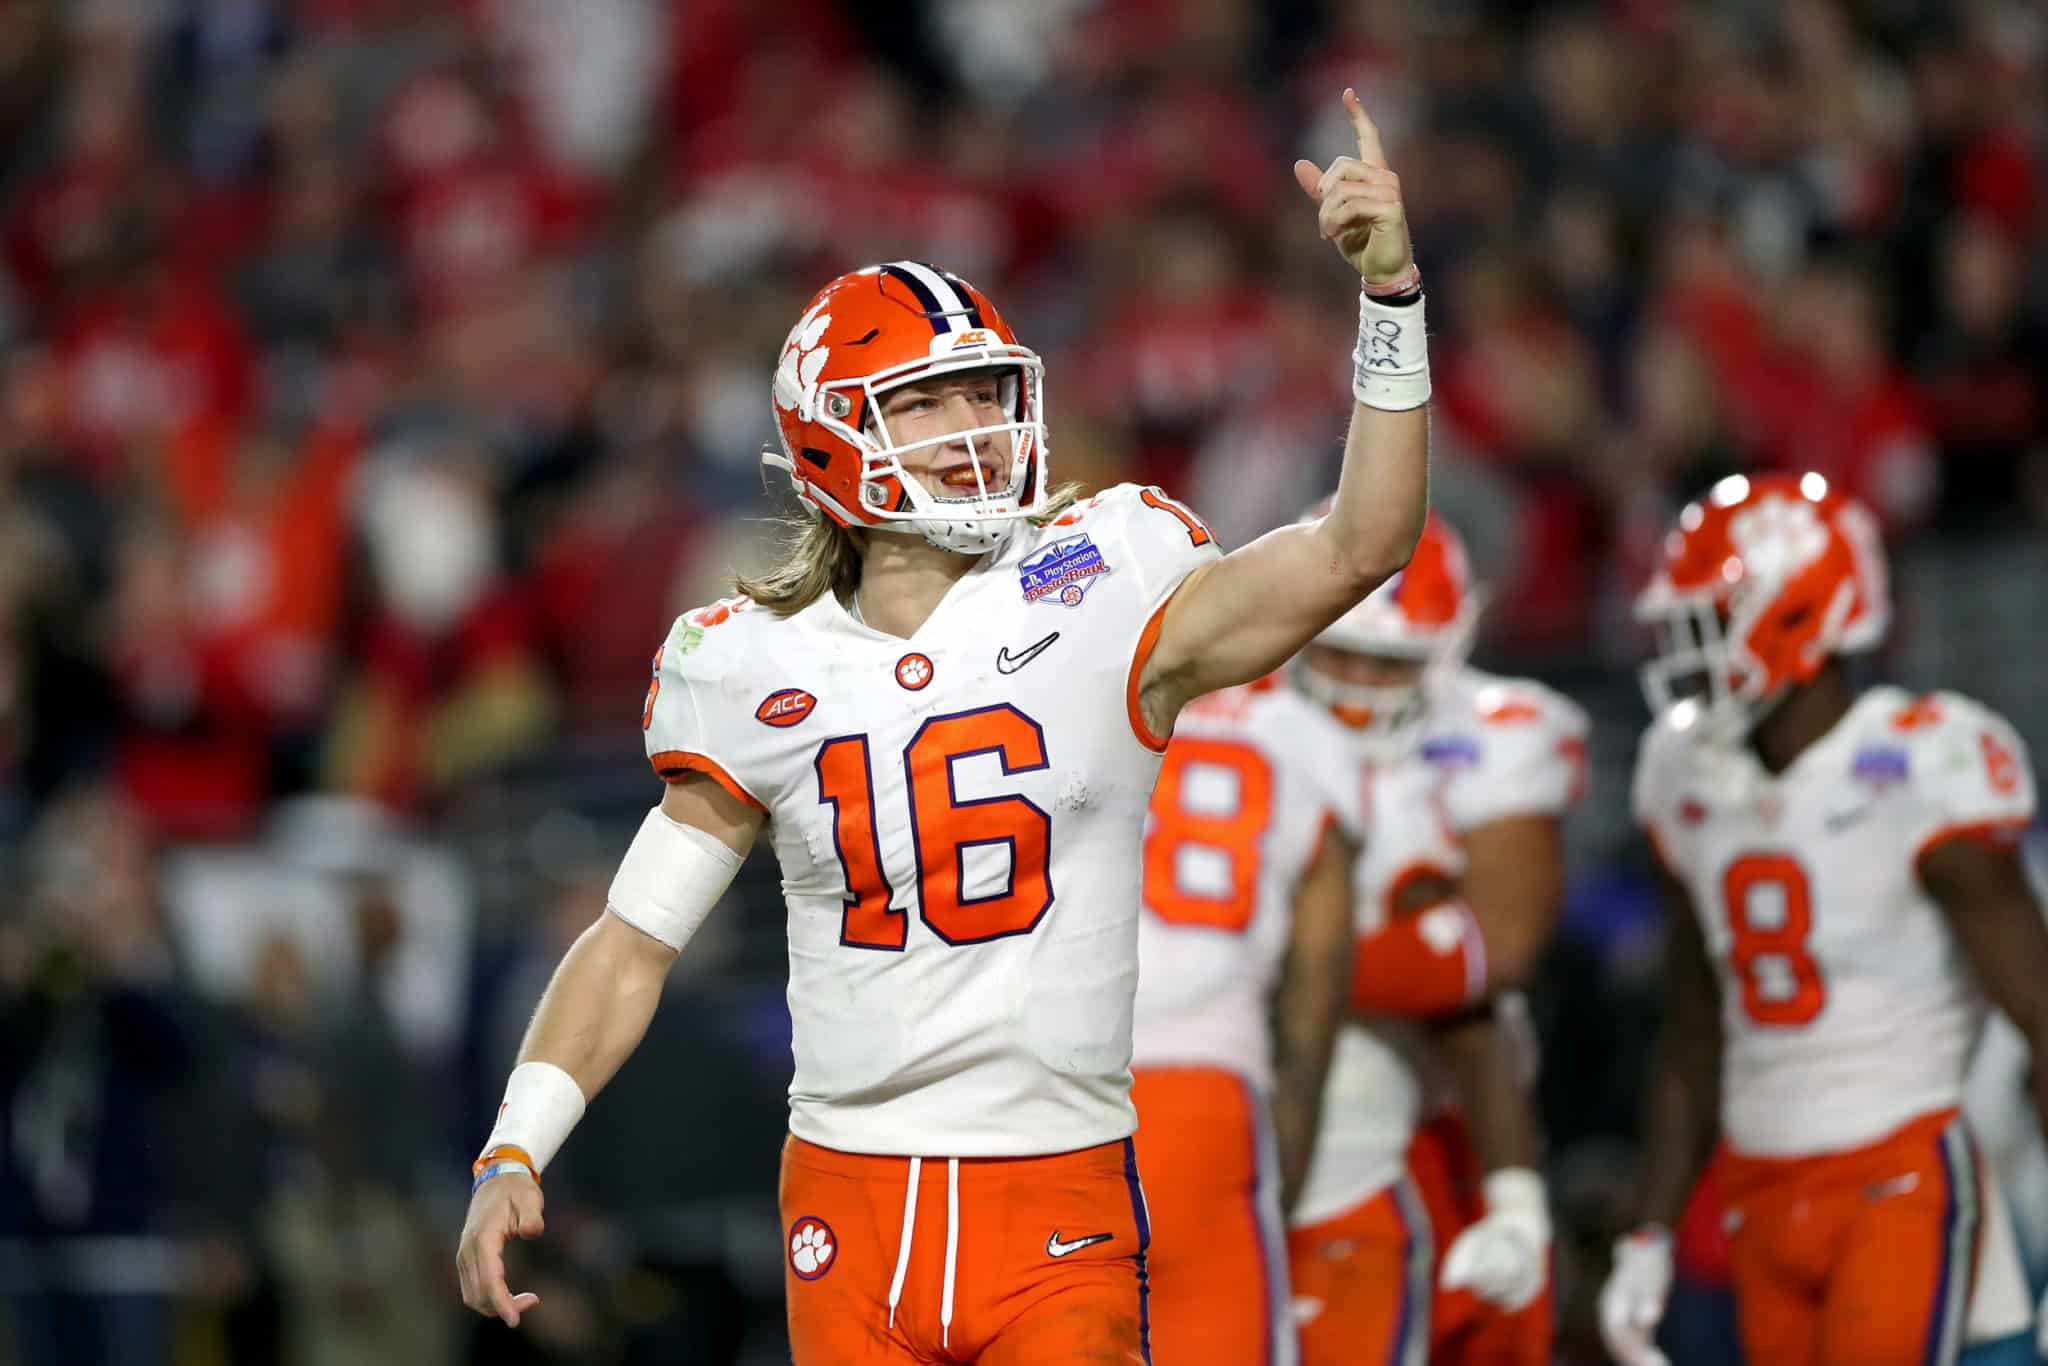 2020 College Football National Championship Odds, Futures, Picks and Best Bets